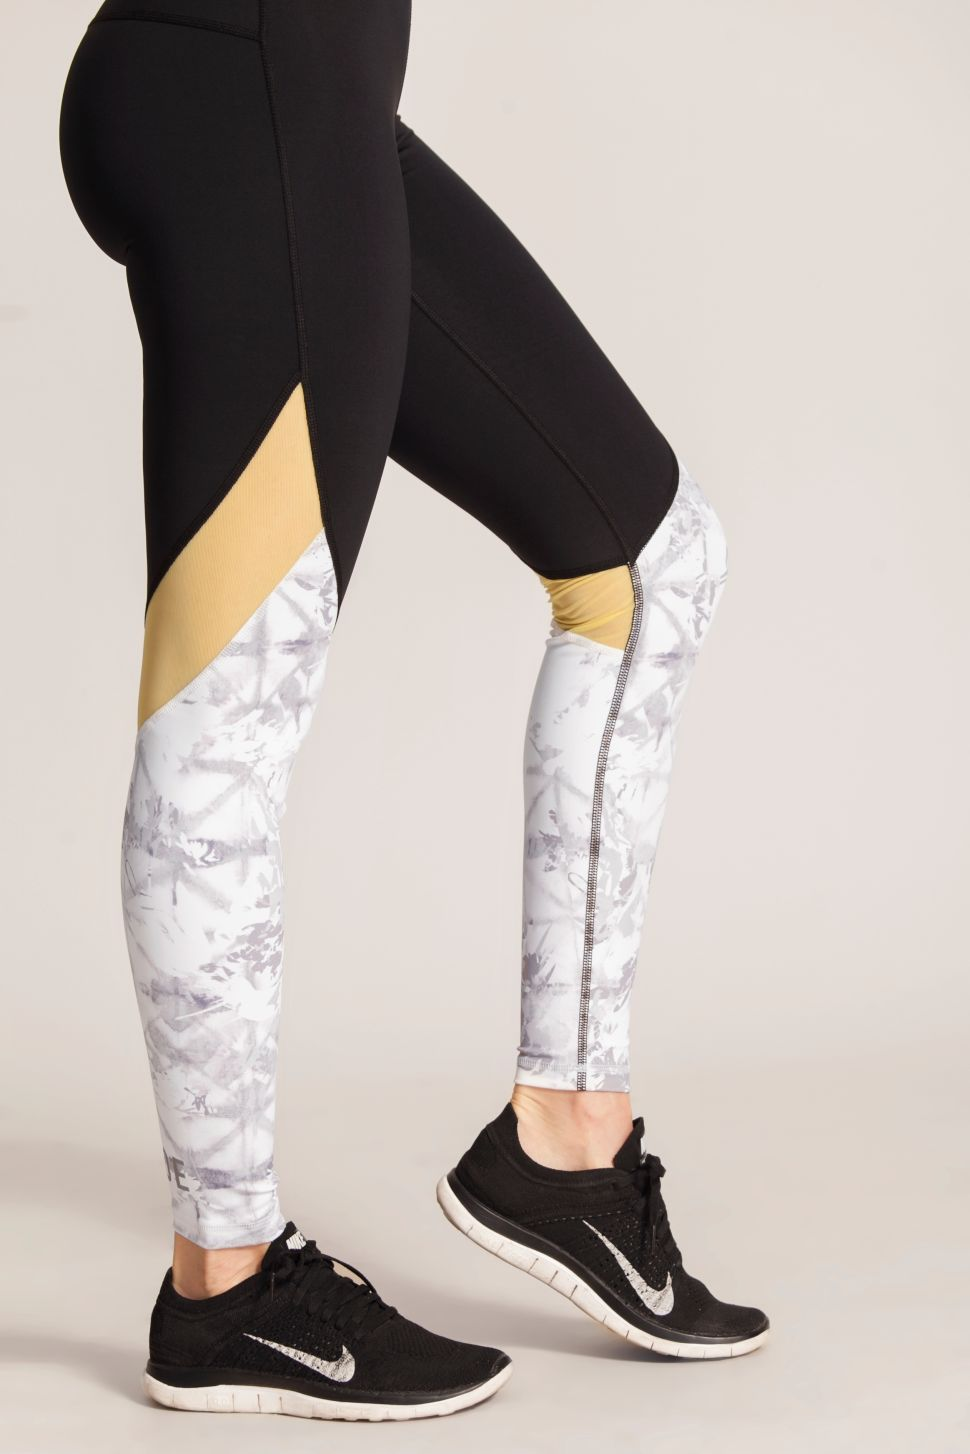 Alala's Custom Leggings Let You Stand Out While Working Out